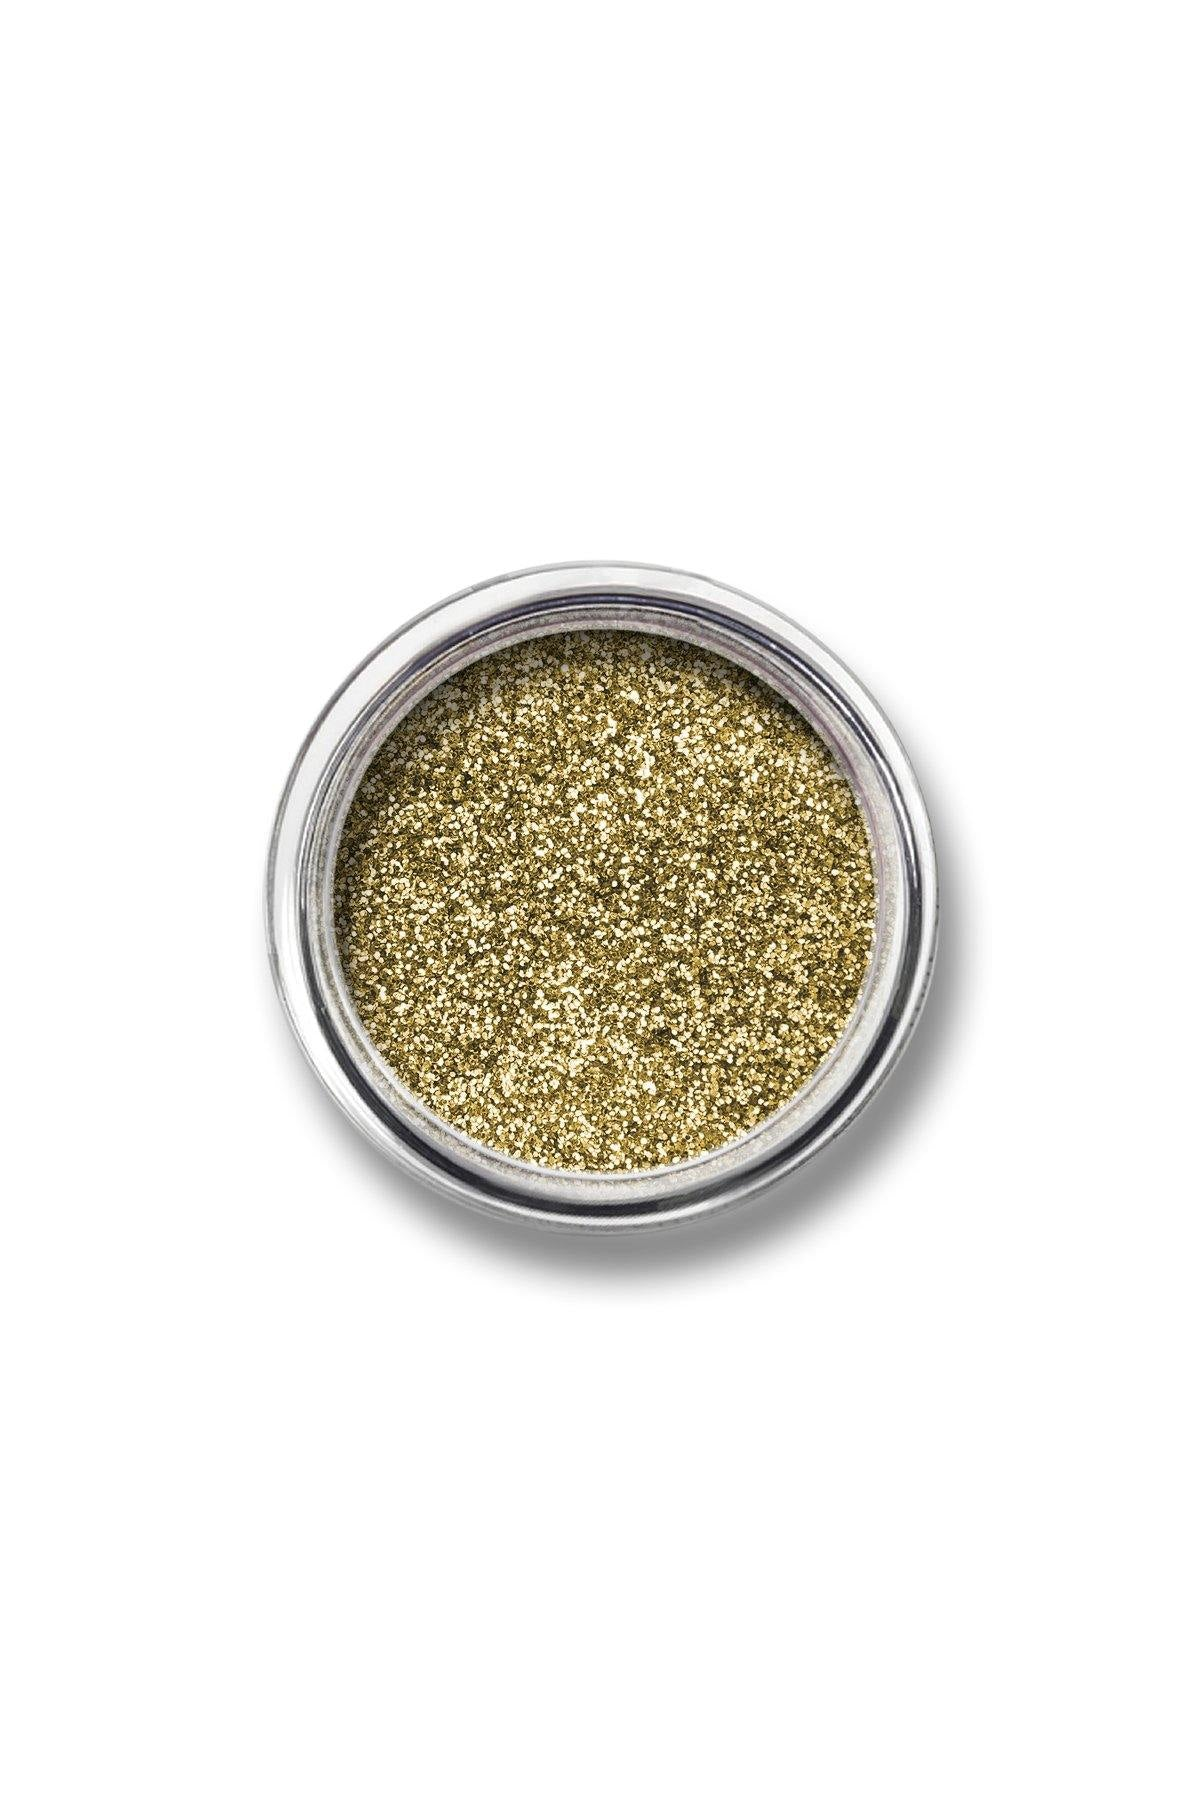 Glitter Powder #4 - Gold